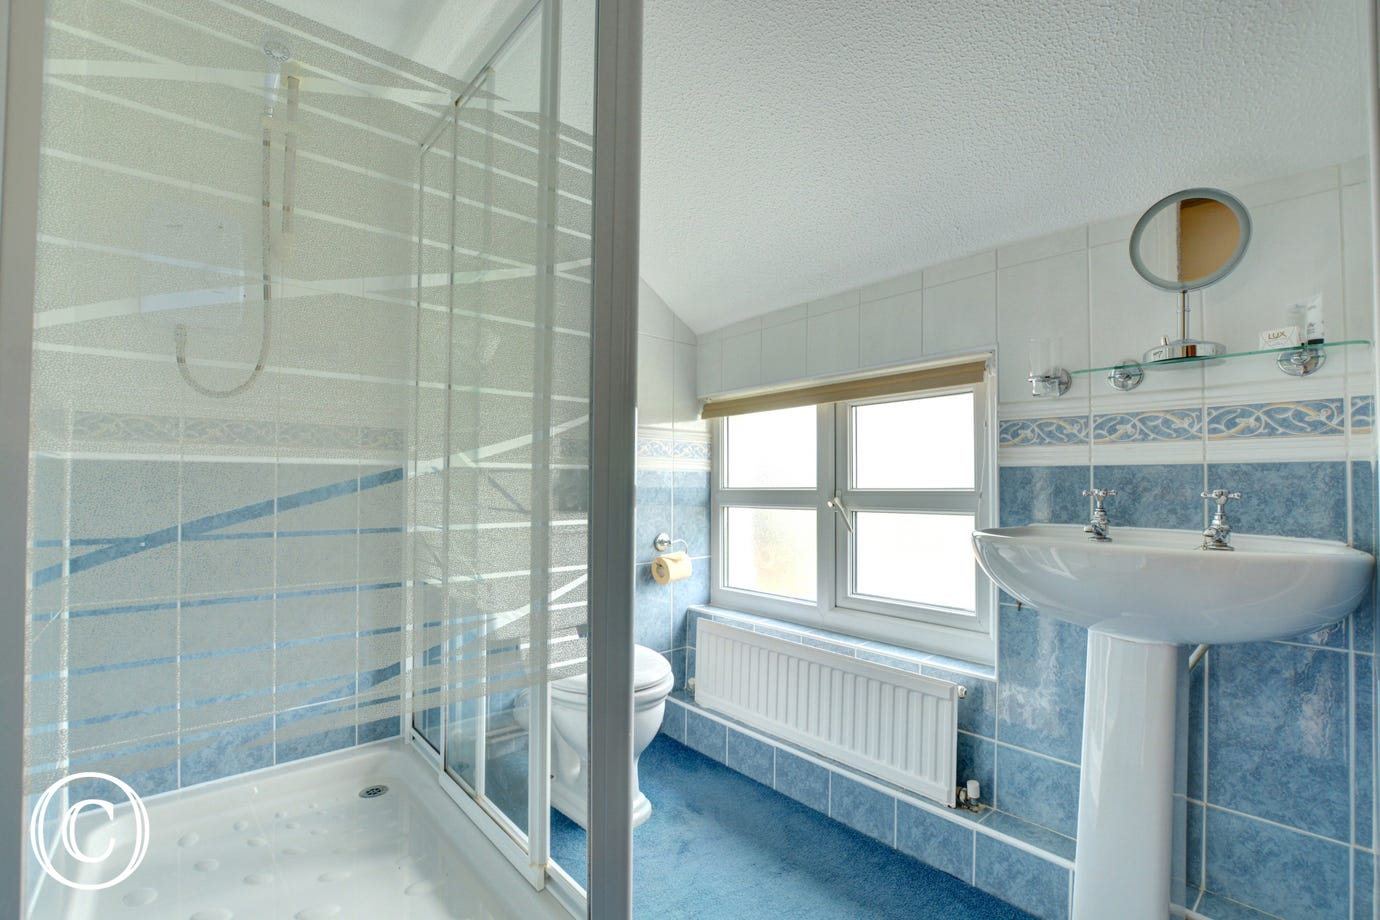 Separate shower room with shower, toilet & wash basin